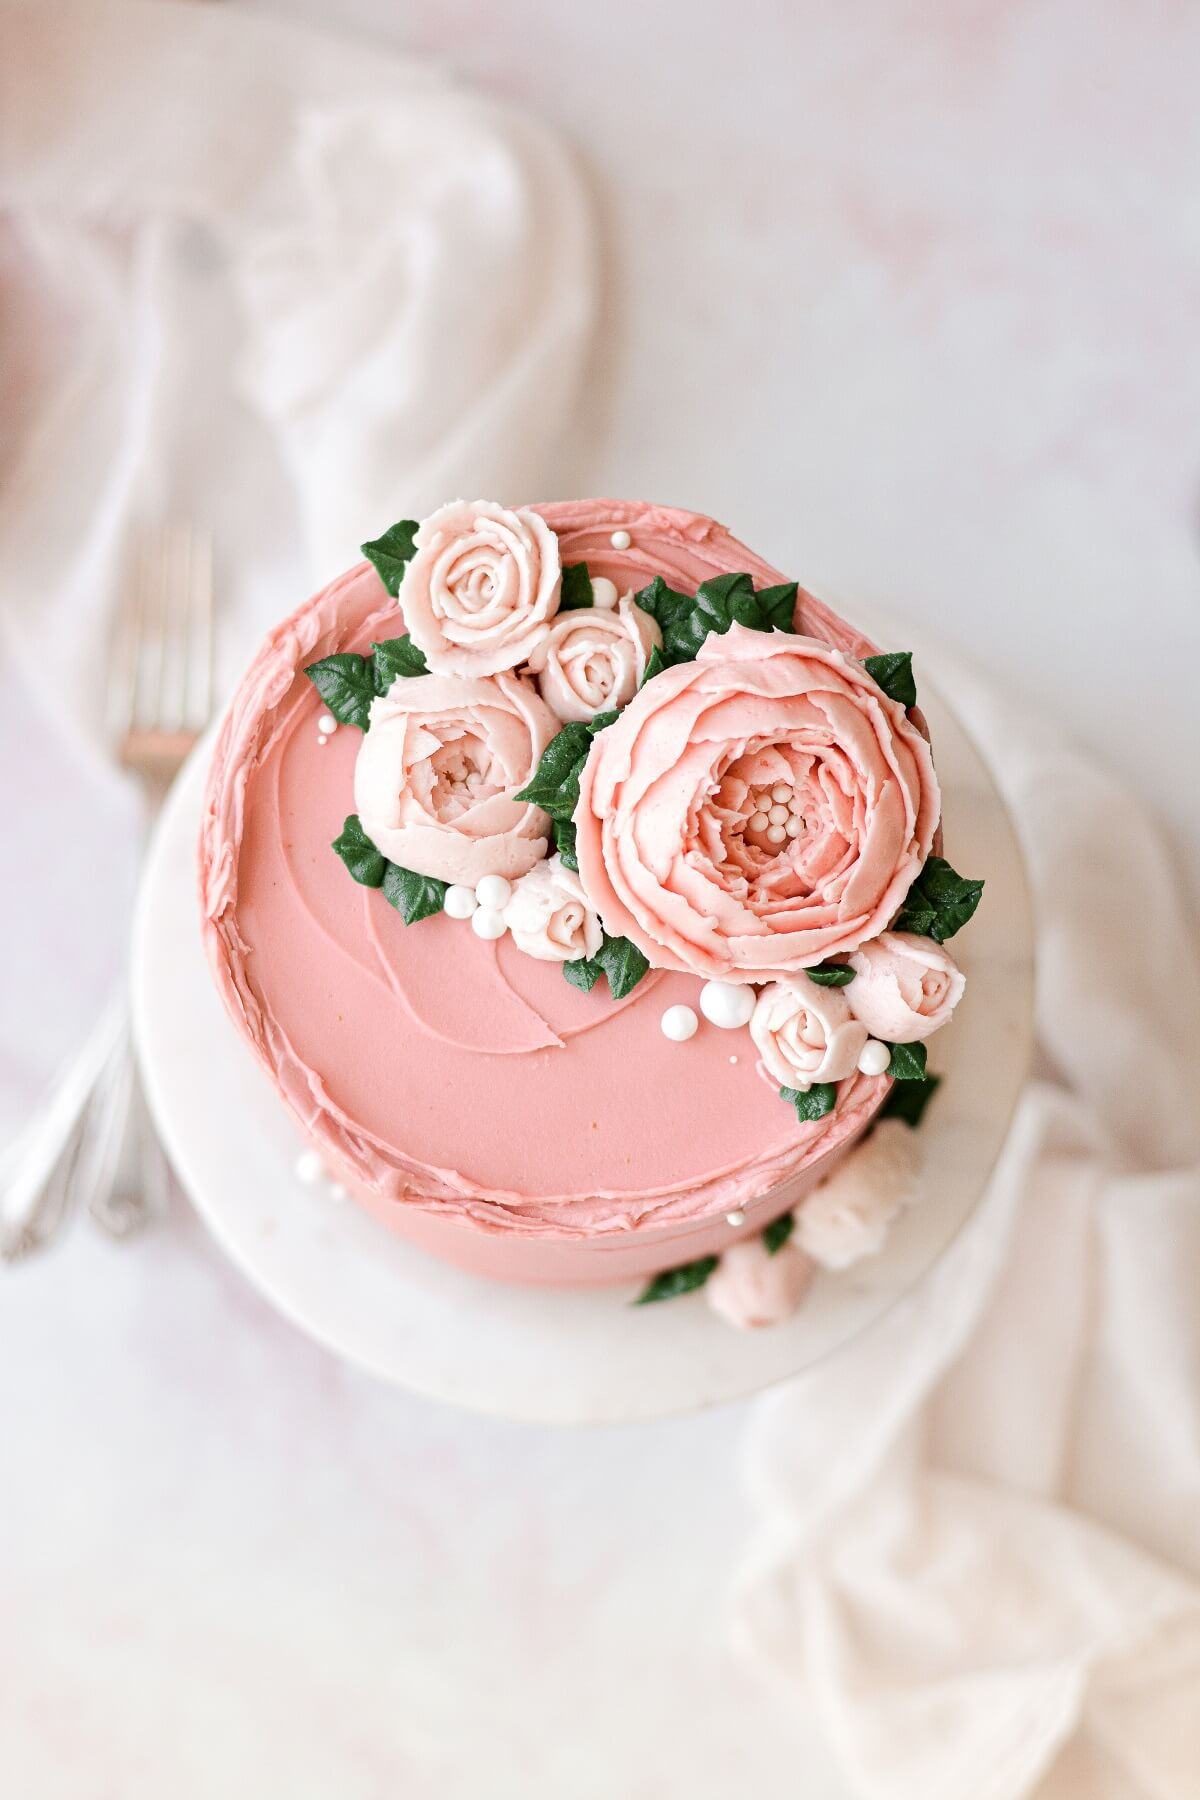 Buttercream flowers on a pink frosted cake.